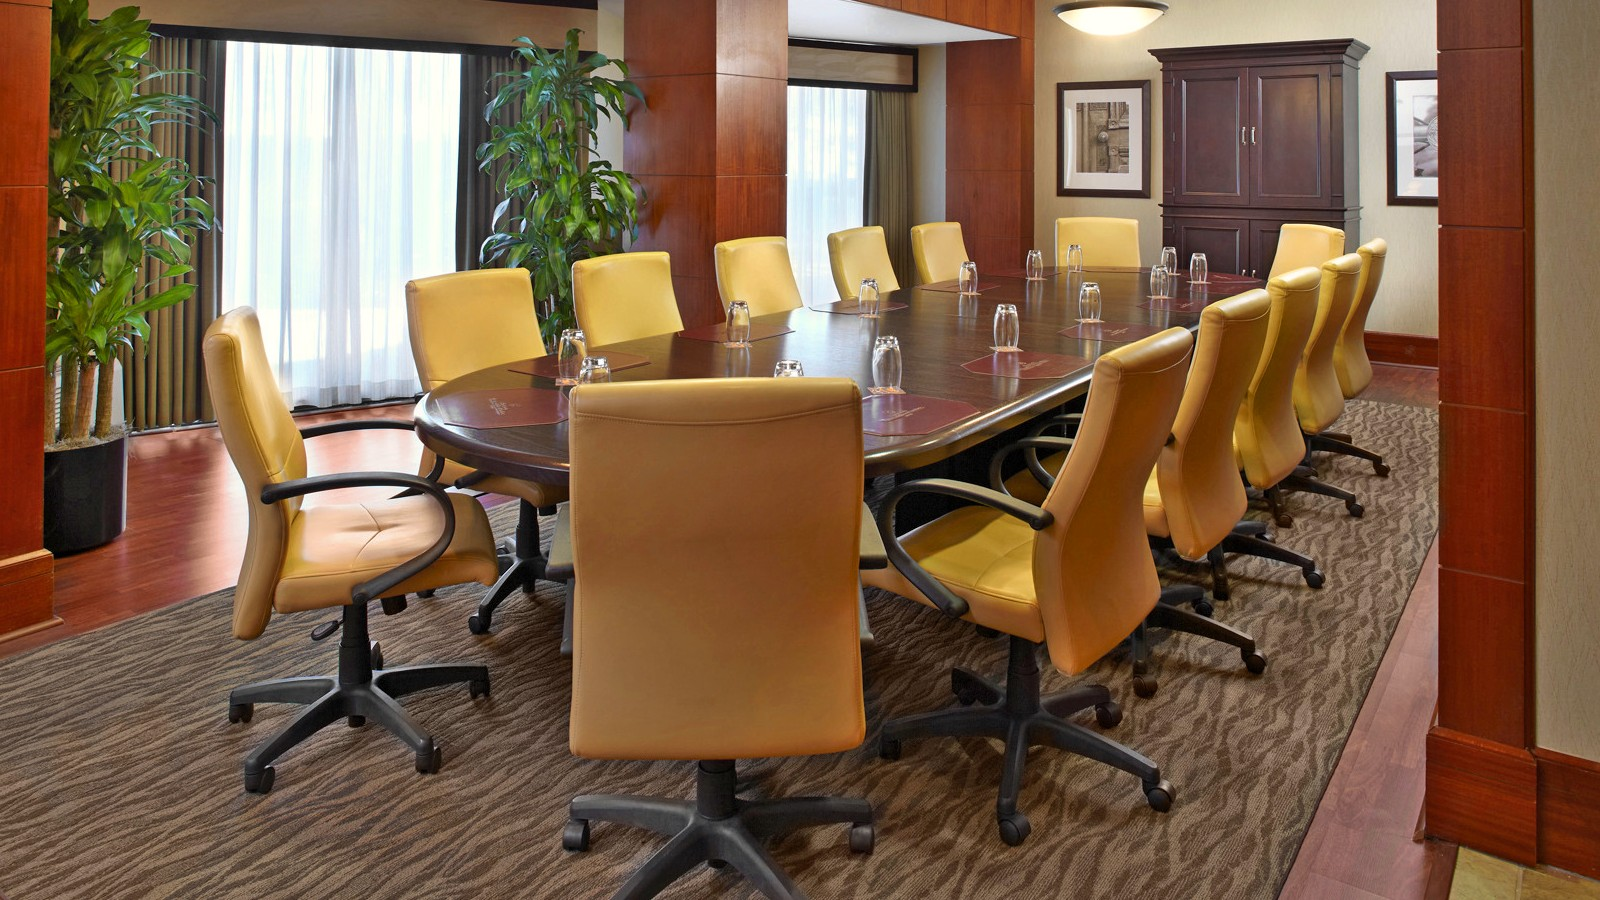 https://www.hotelsbyday.com/_data/default-hotel_image/0/2646/sheratonhoustonbrookhollowhotelboardroom.jpg